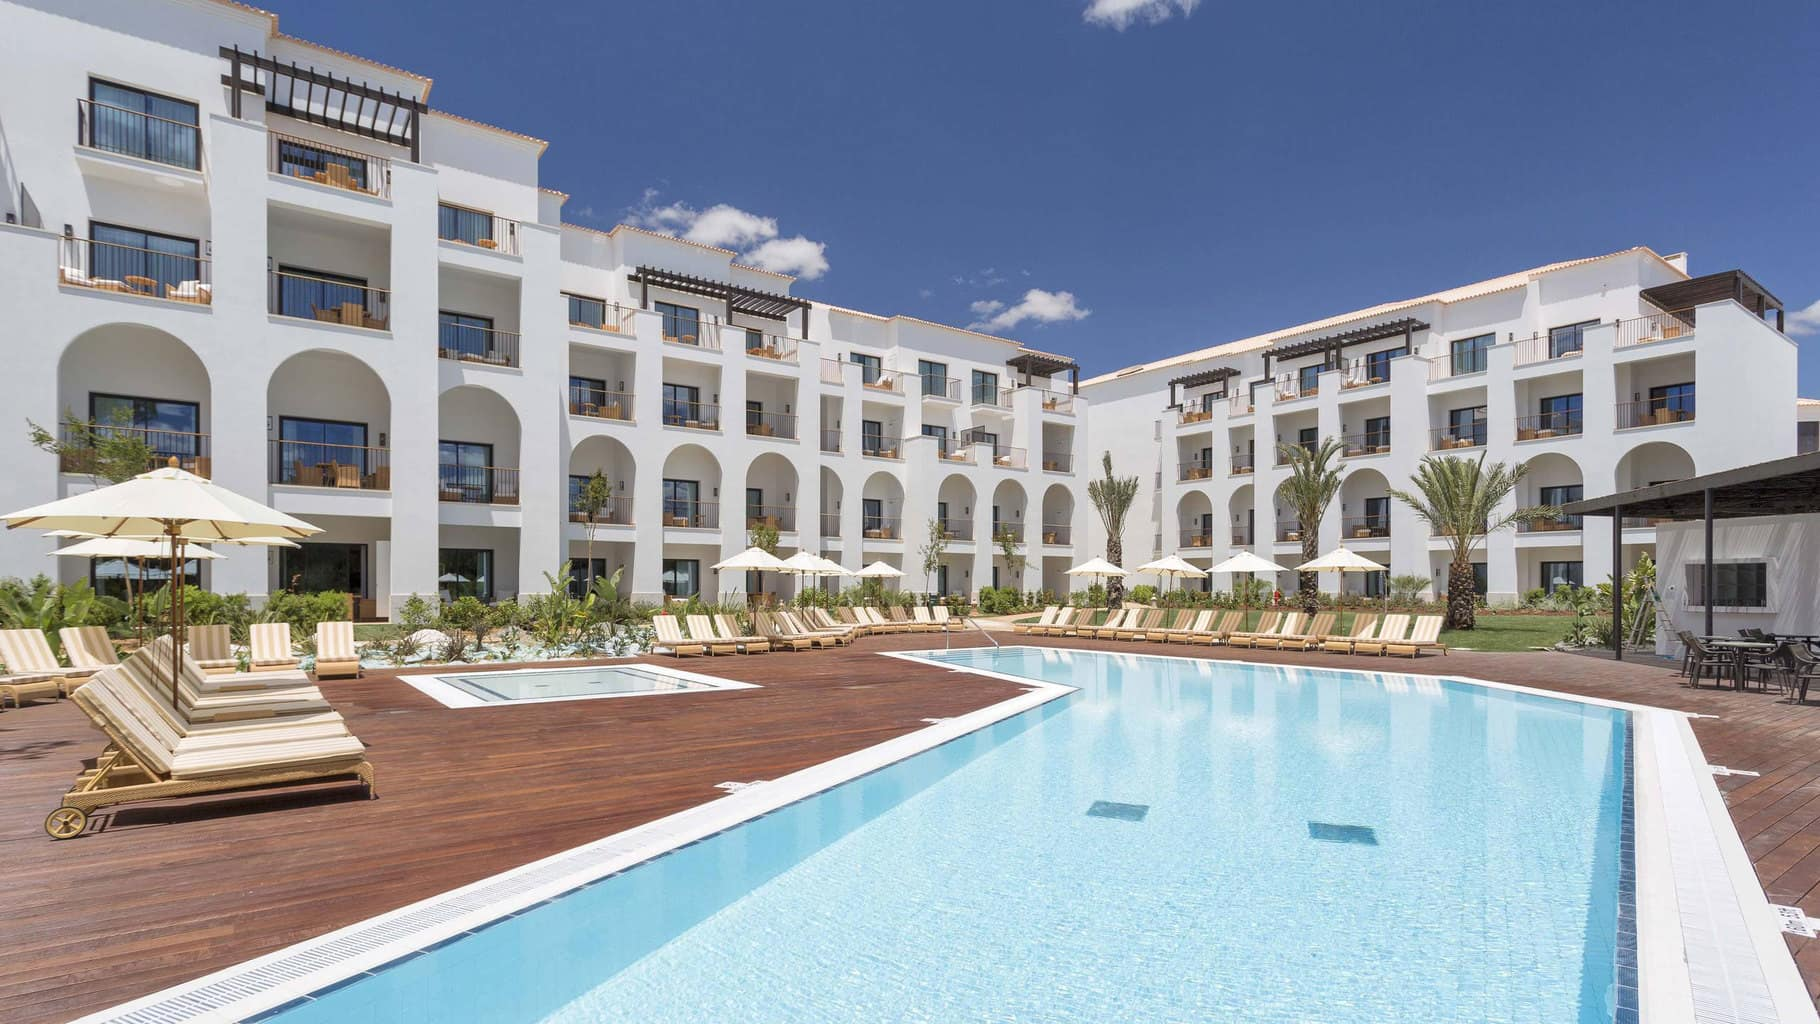 Instant Car Offer >> 5* Pine Cliffs Hotel, a Luxury Collection Resort, Algarve | Your Travel